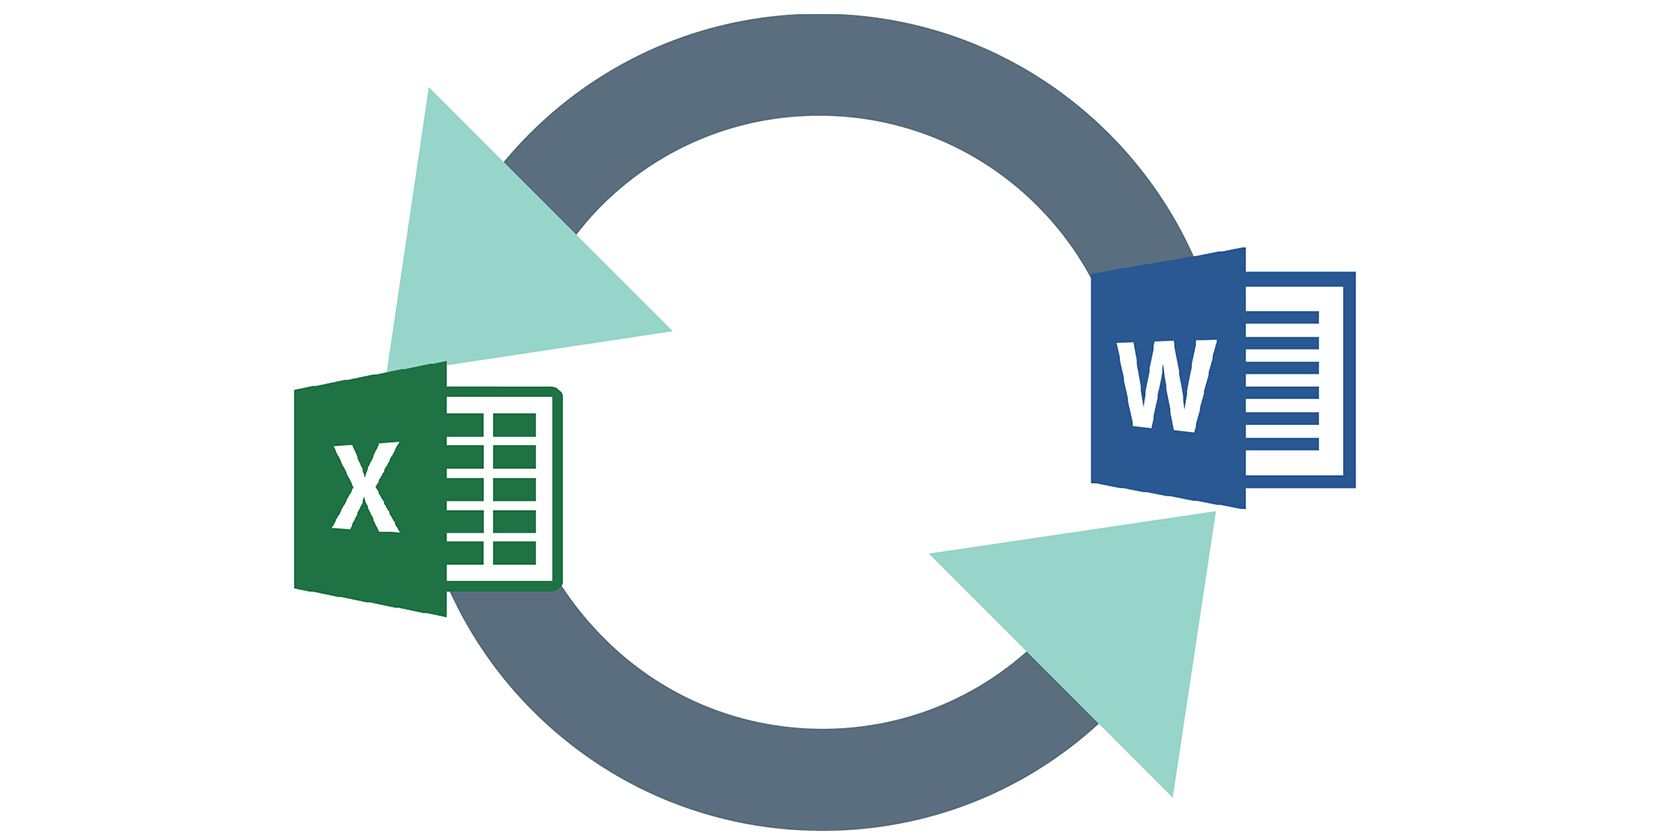 How to Use Excel Formulas in Word Documents